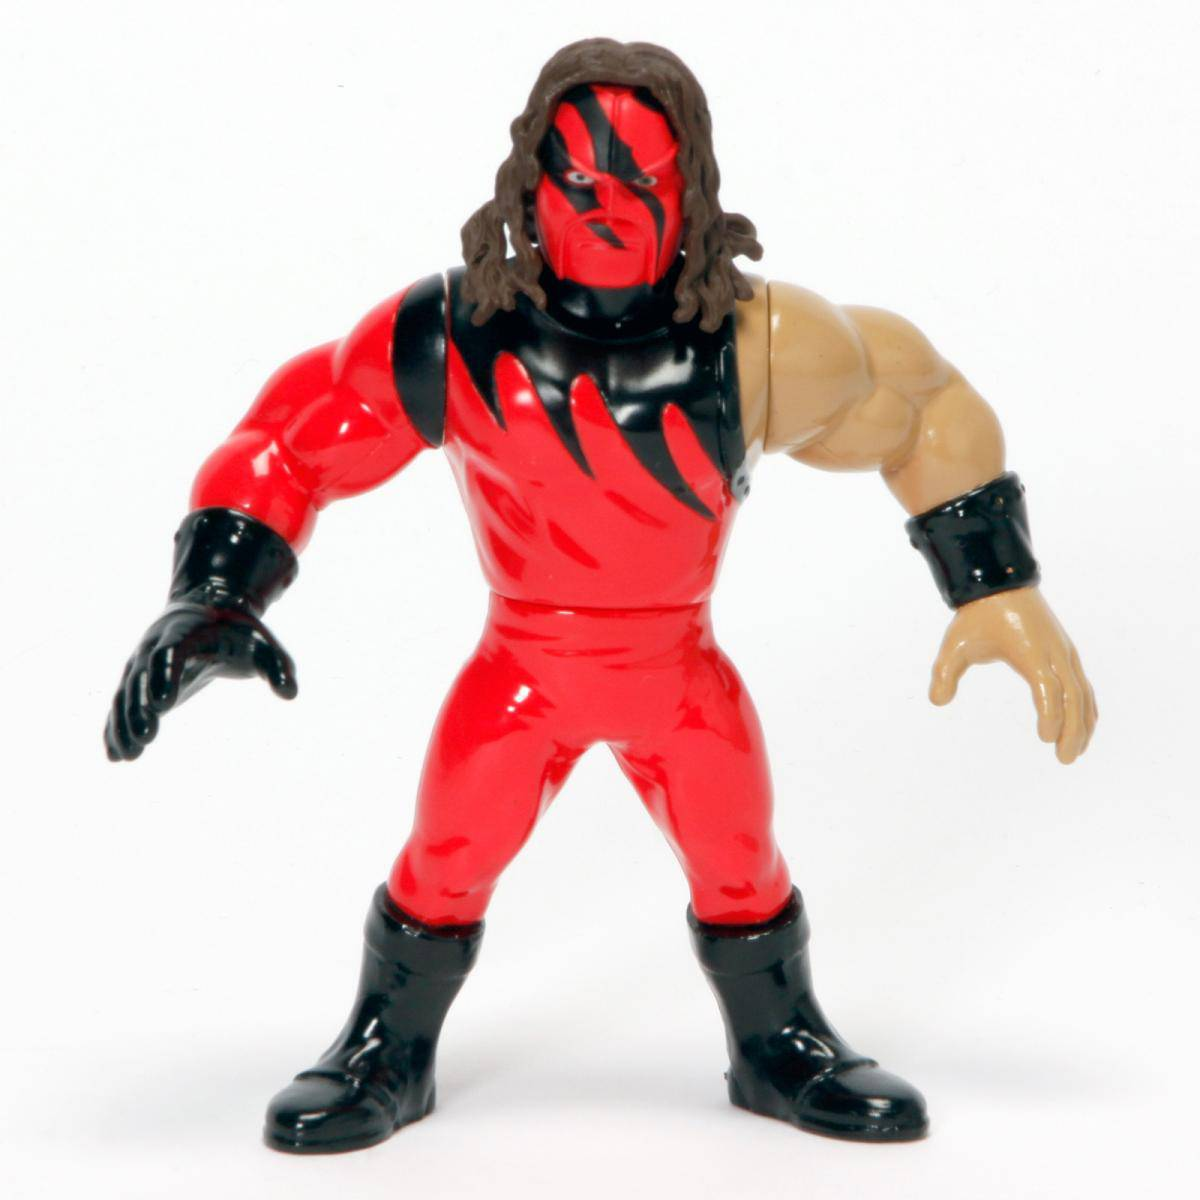 Early Look At New Mattel Wwe Action Figures